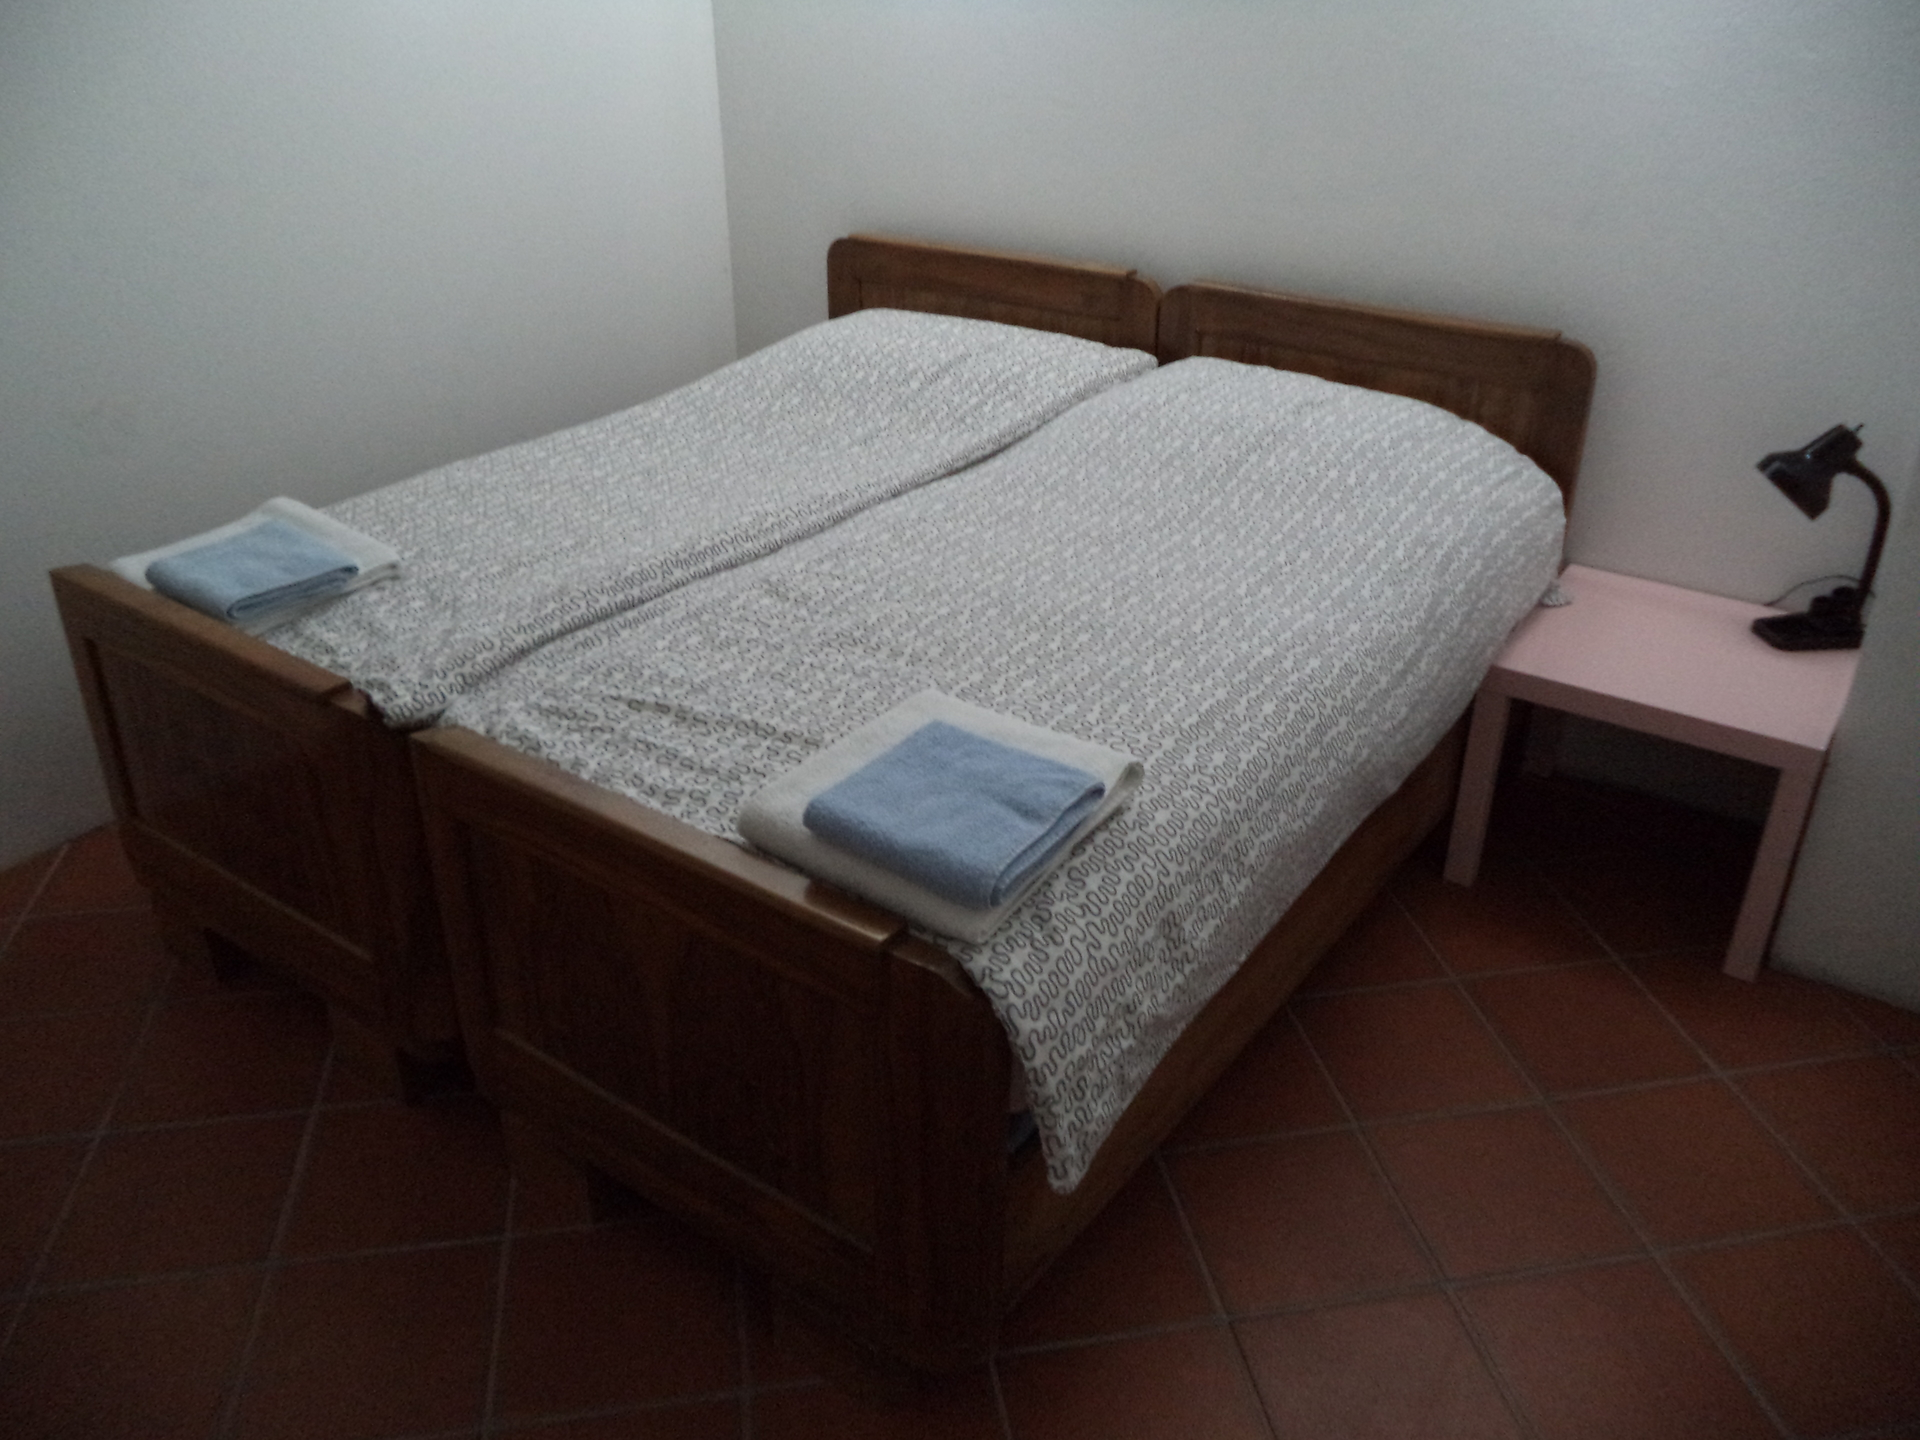 The double beds in the main bedroom